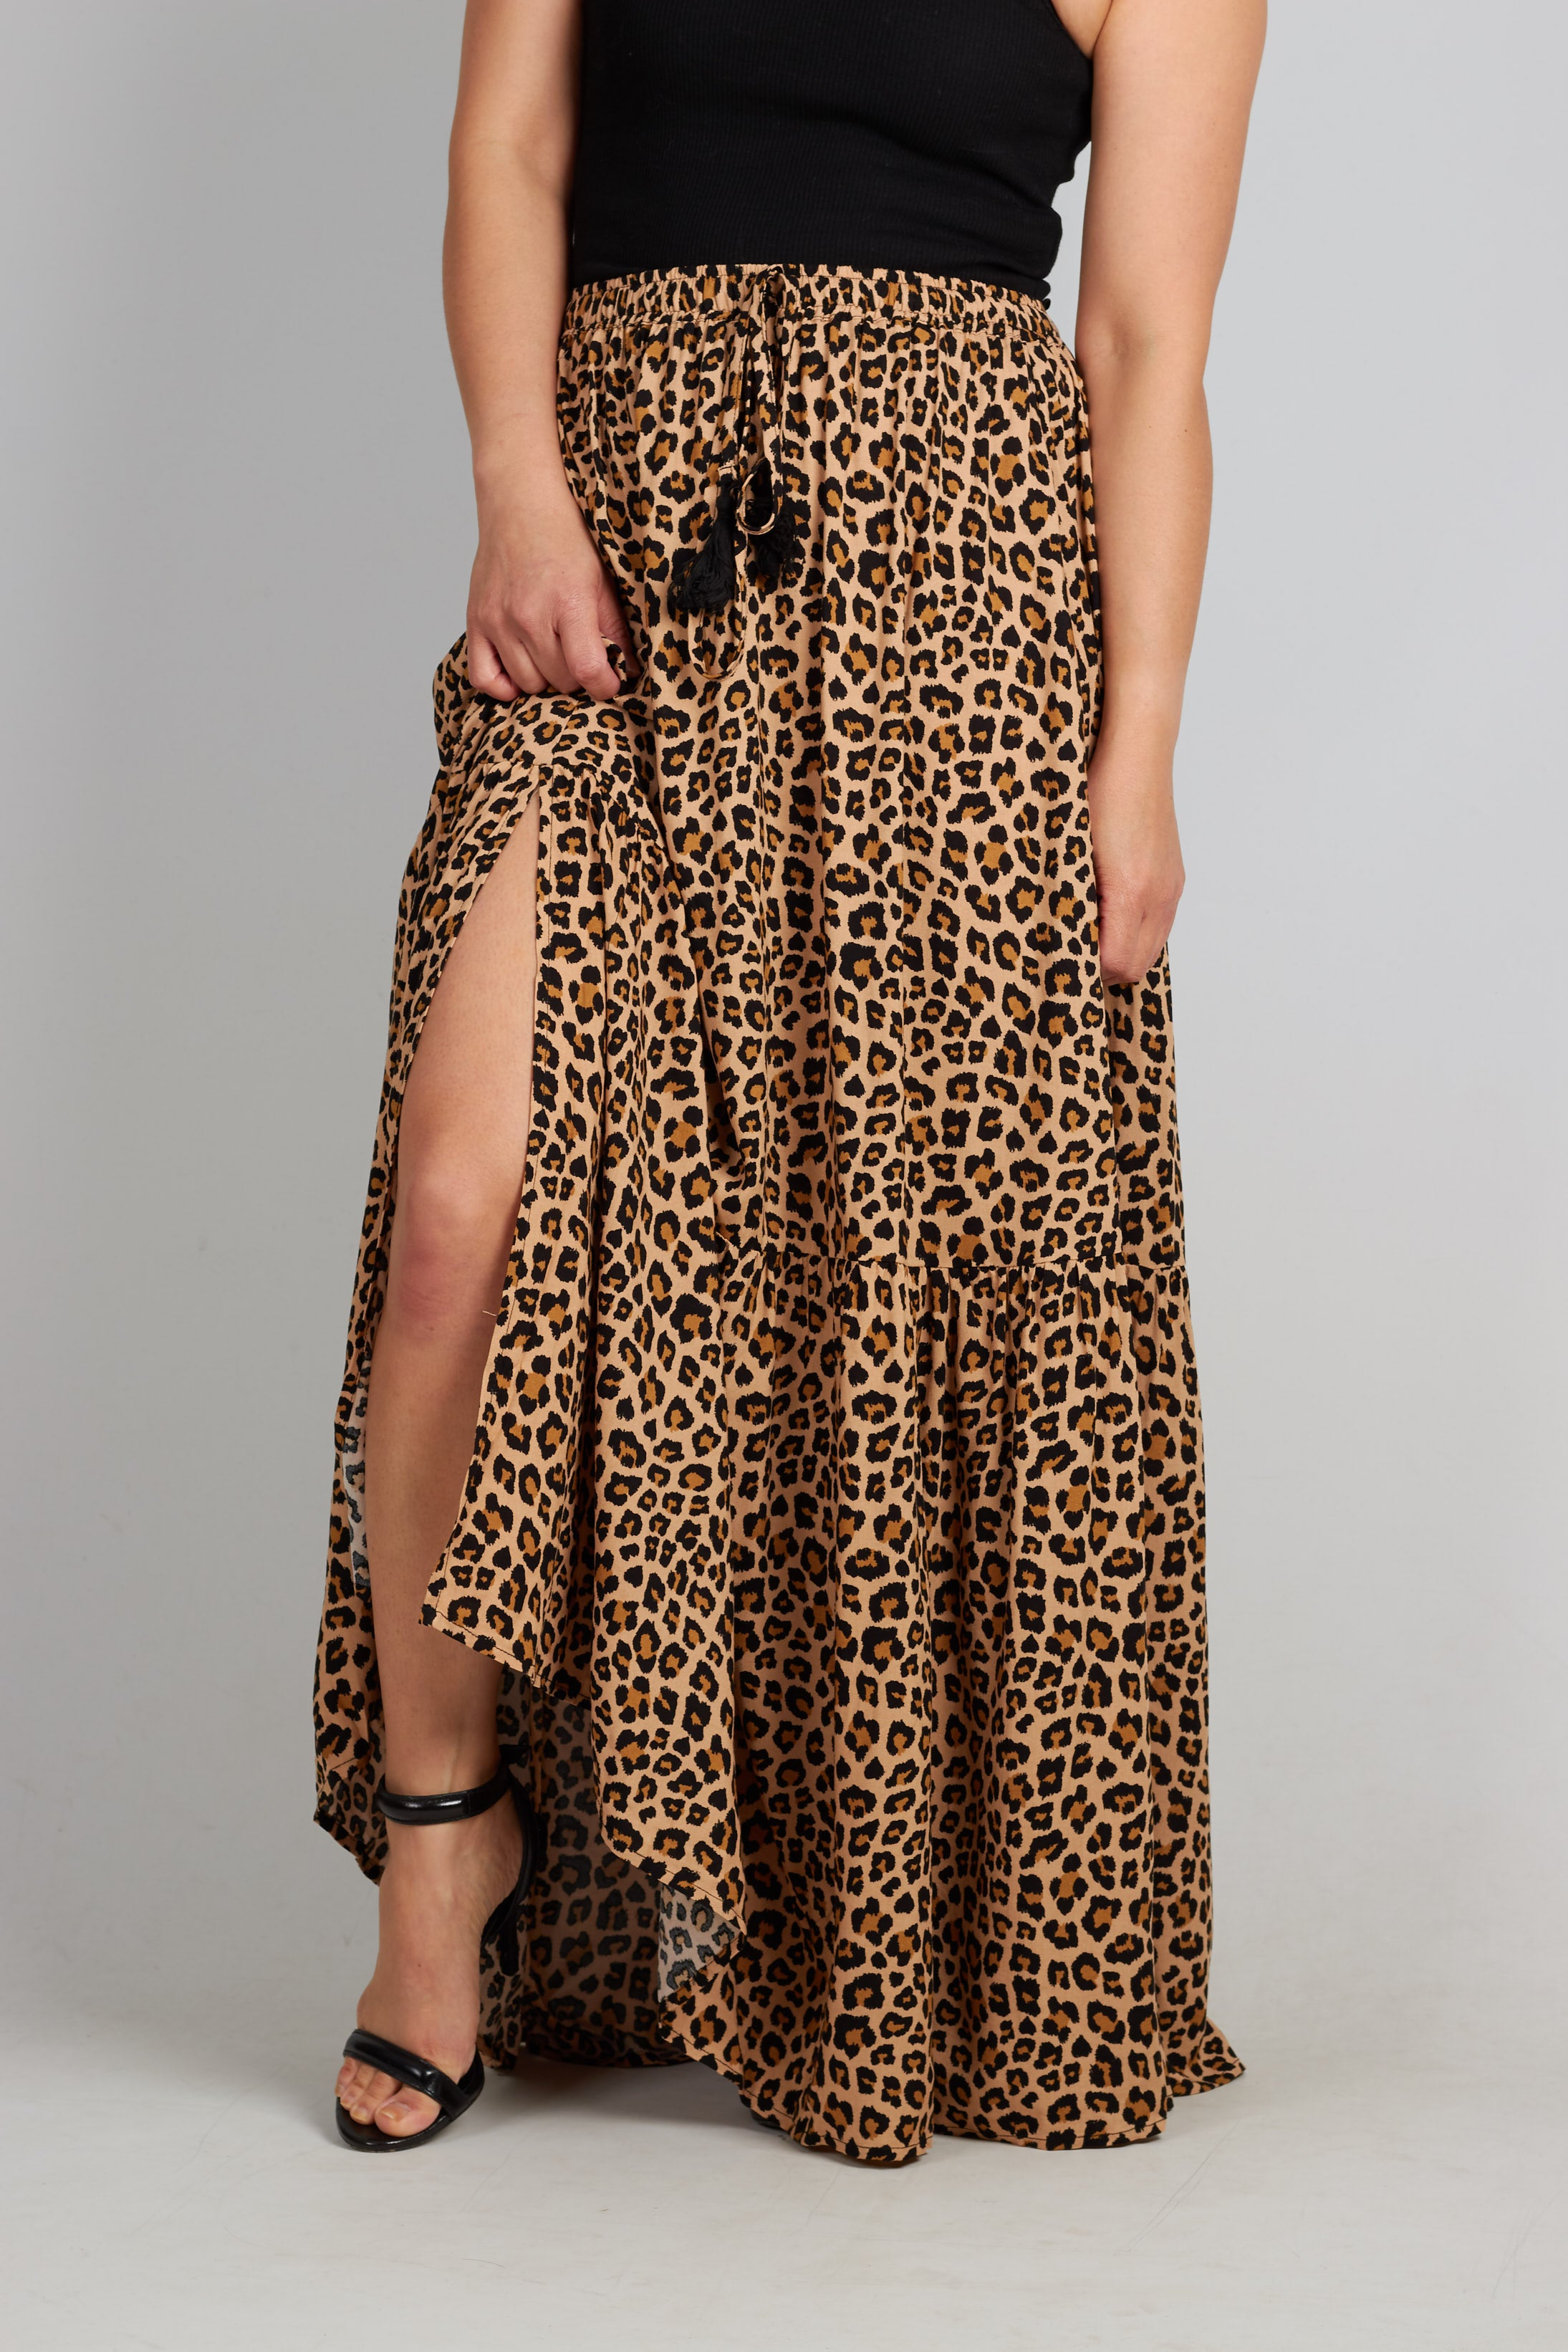 Leopard print maxi skirt with drawstring elasticised waistband and side slits